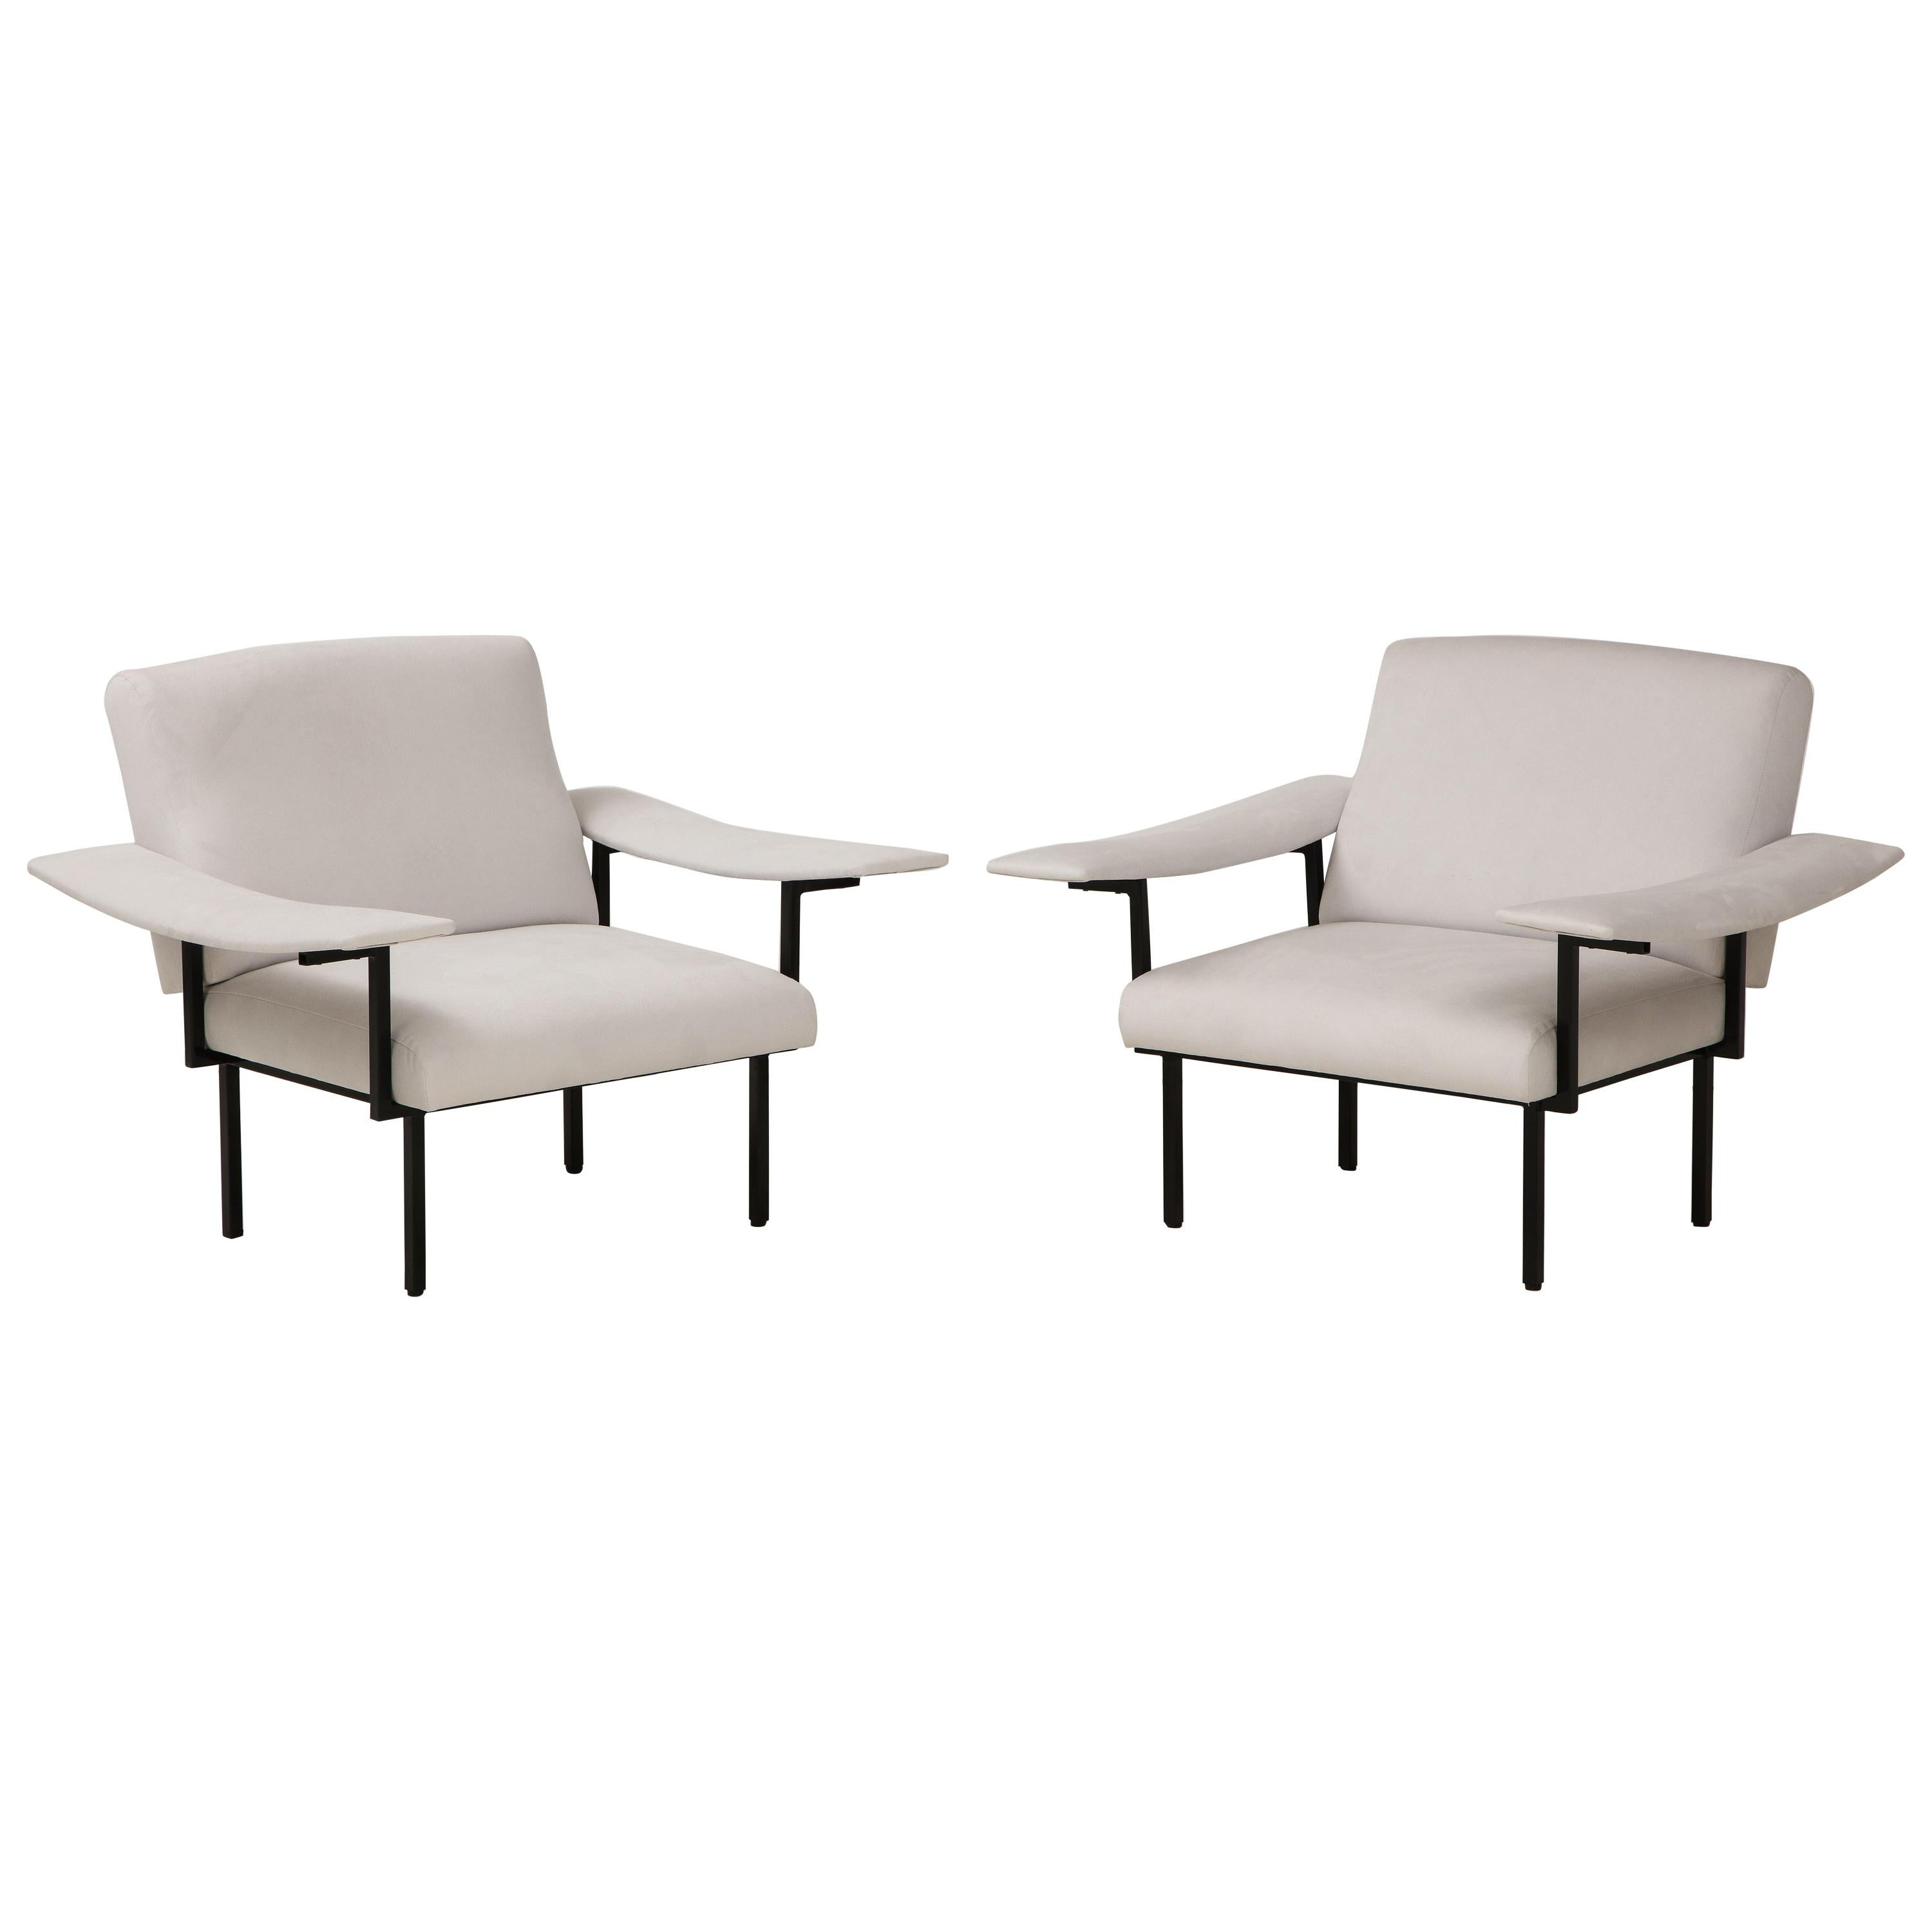 Pair of Italian Modern Iron Upholstered Armchairs